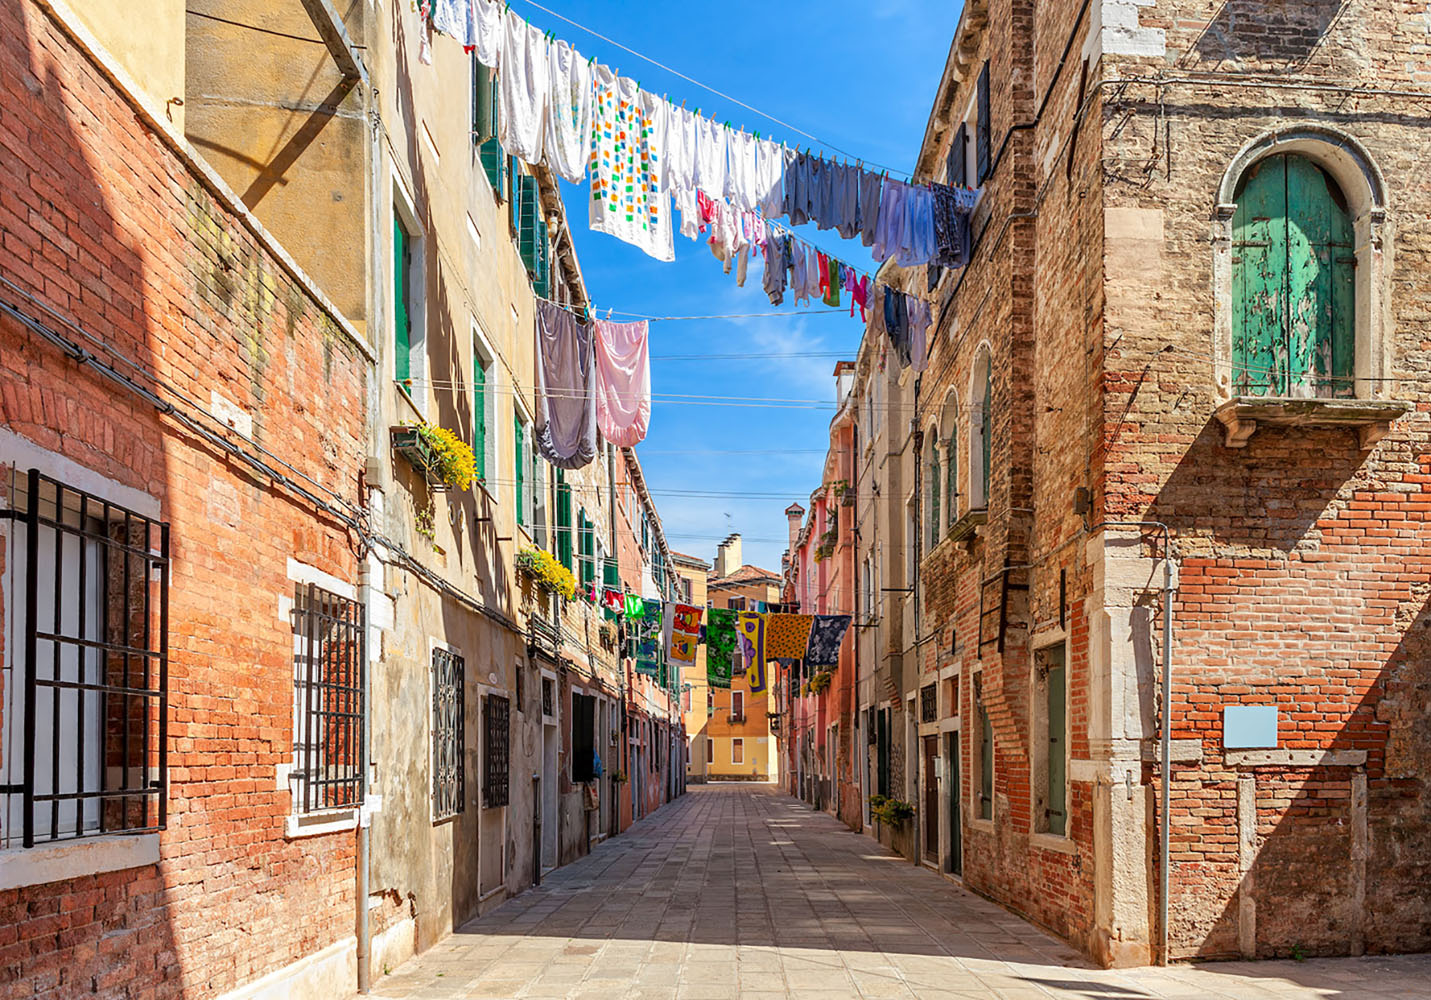 Laundry hangs from homes on a quiet street in Venice, Italy.